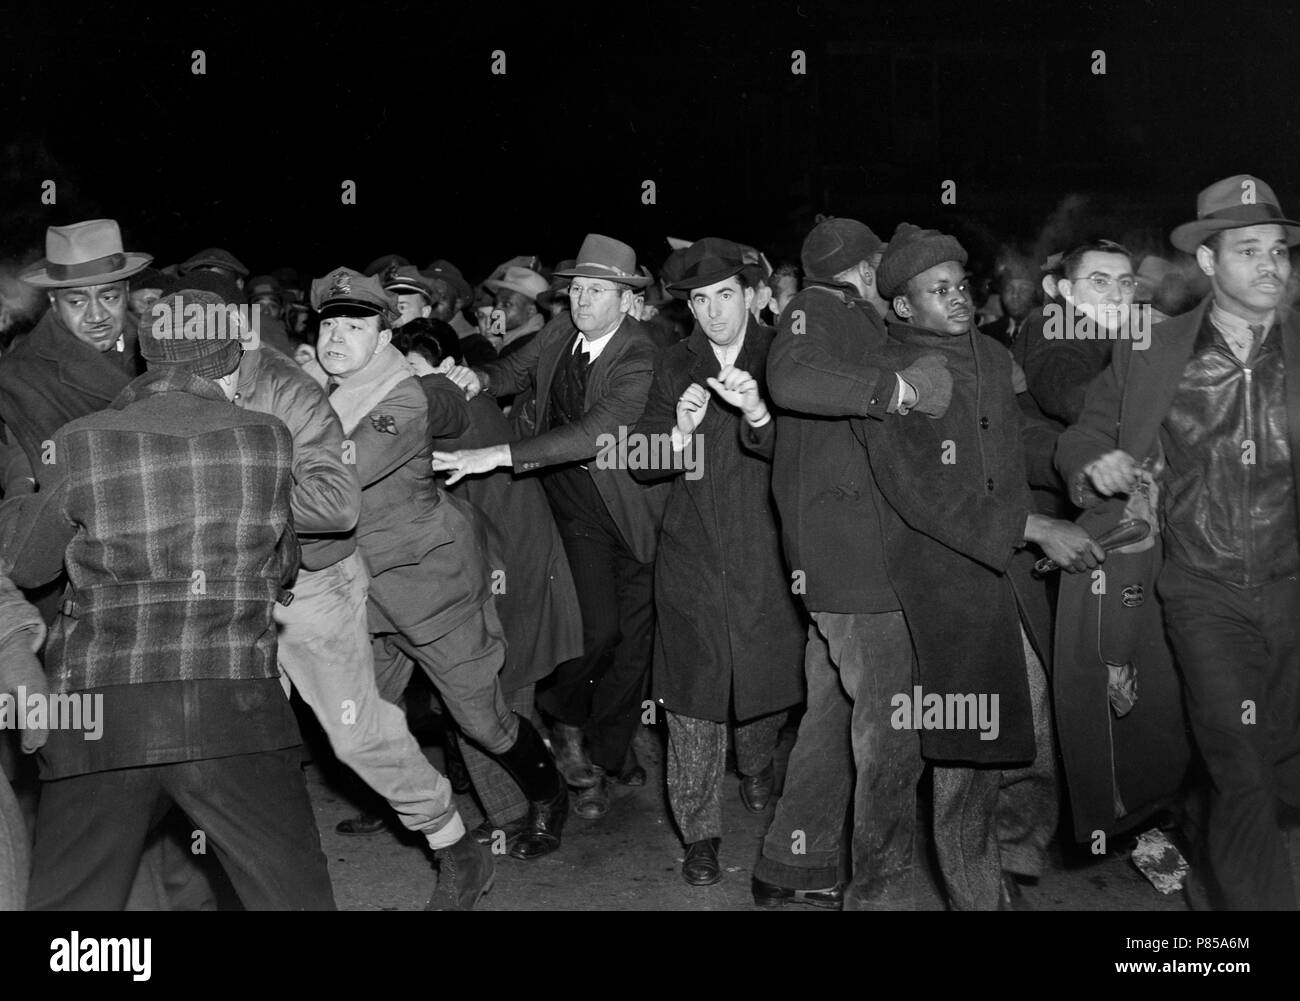 Pushing and shoving breaks out along a picket line at a meatpacking plant in Kansas City, MO, ca. 1946. - Stock Image